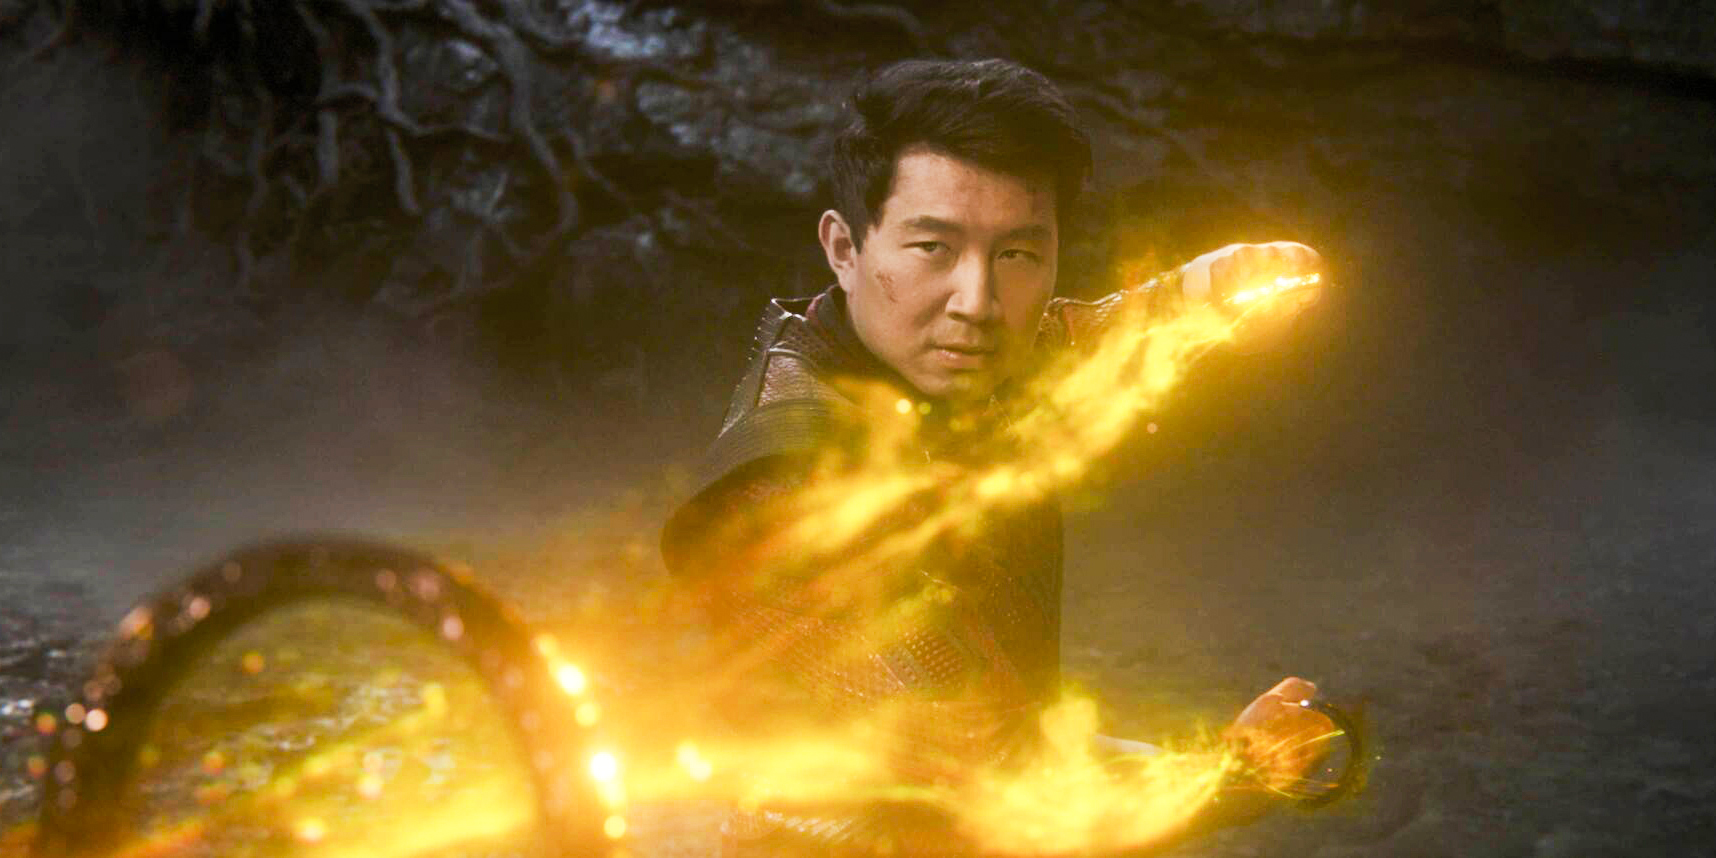 Marvel's 'Shang-Chi' was made with China in mind. Beijing doesn't like it.